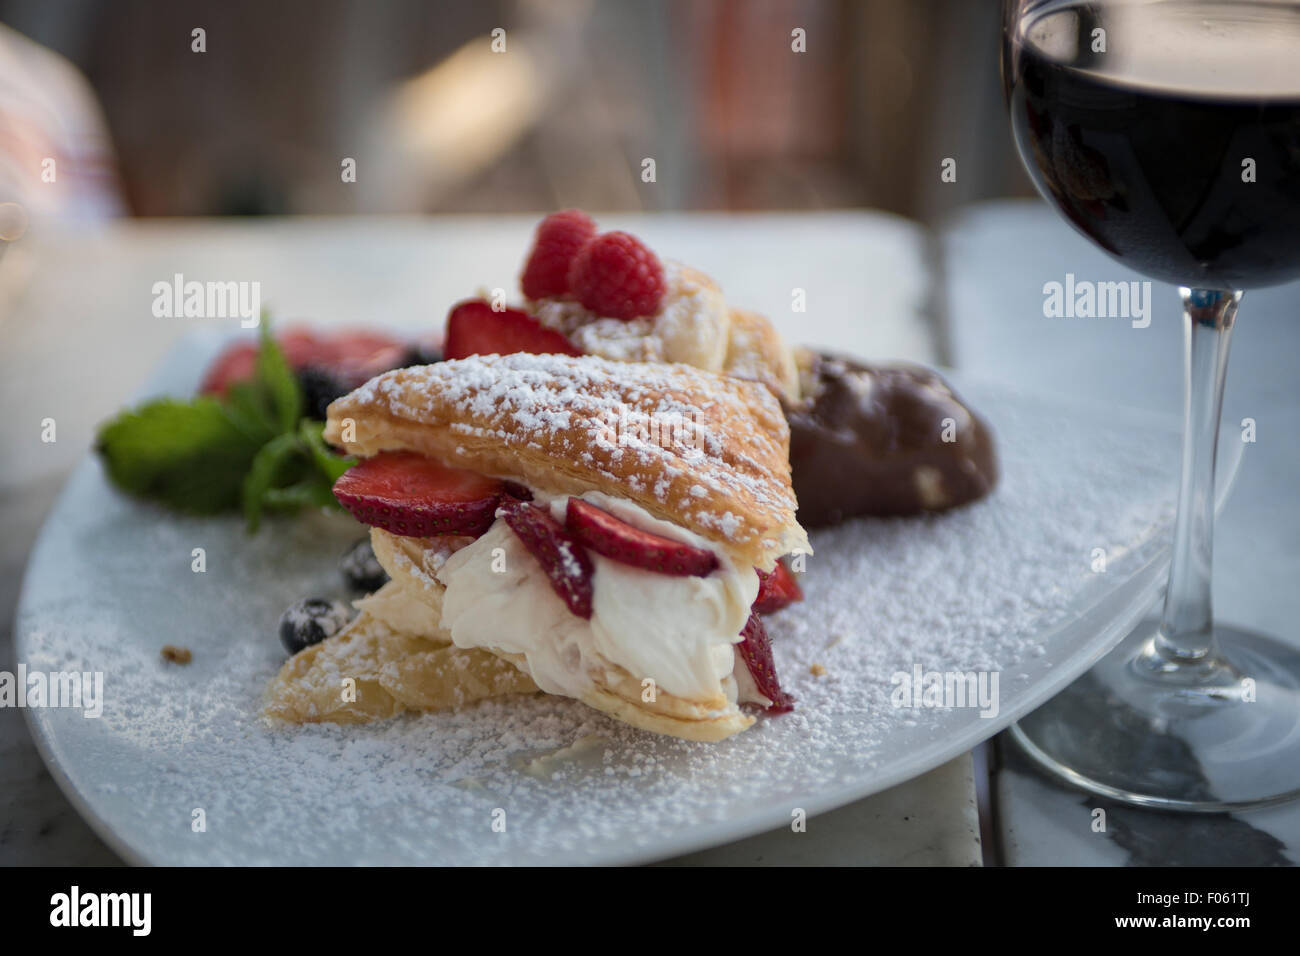 Italian Dessert served with red wine - Stock Image